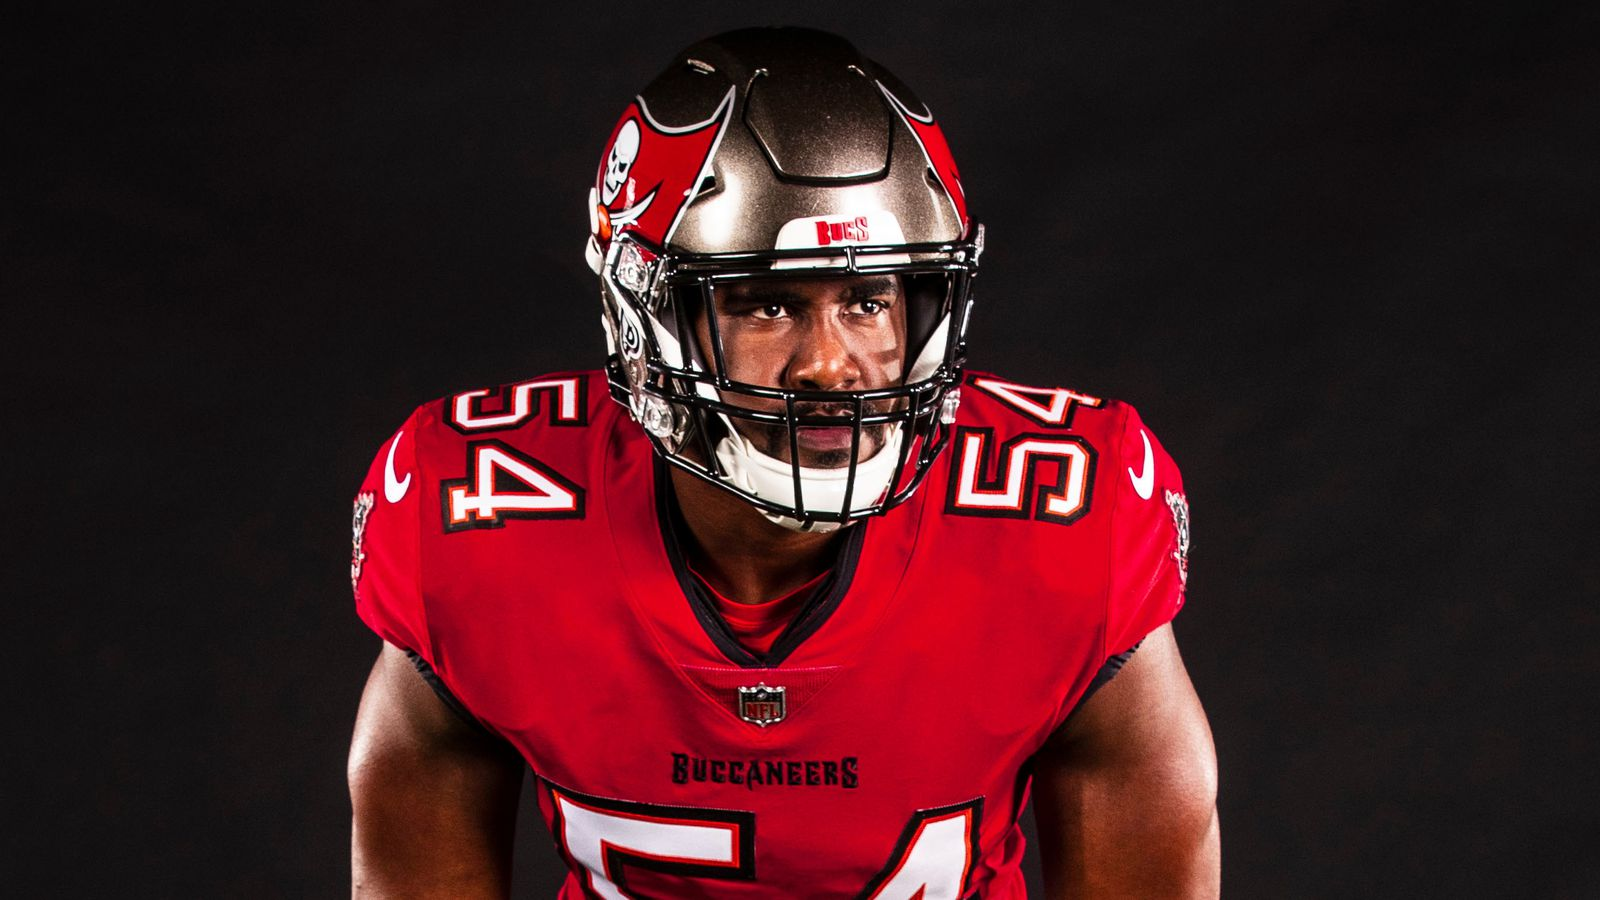 Lavonte David Says Reality Will Hit When Tom Brady Wears These Bucs Uniforms